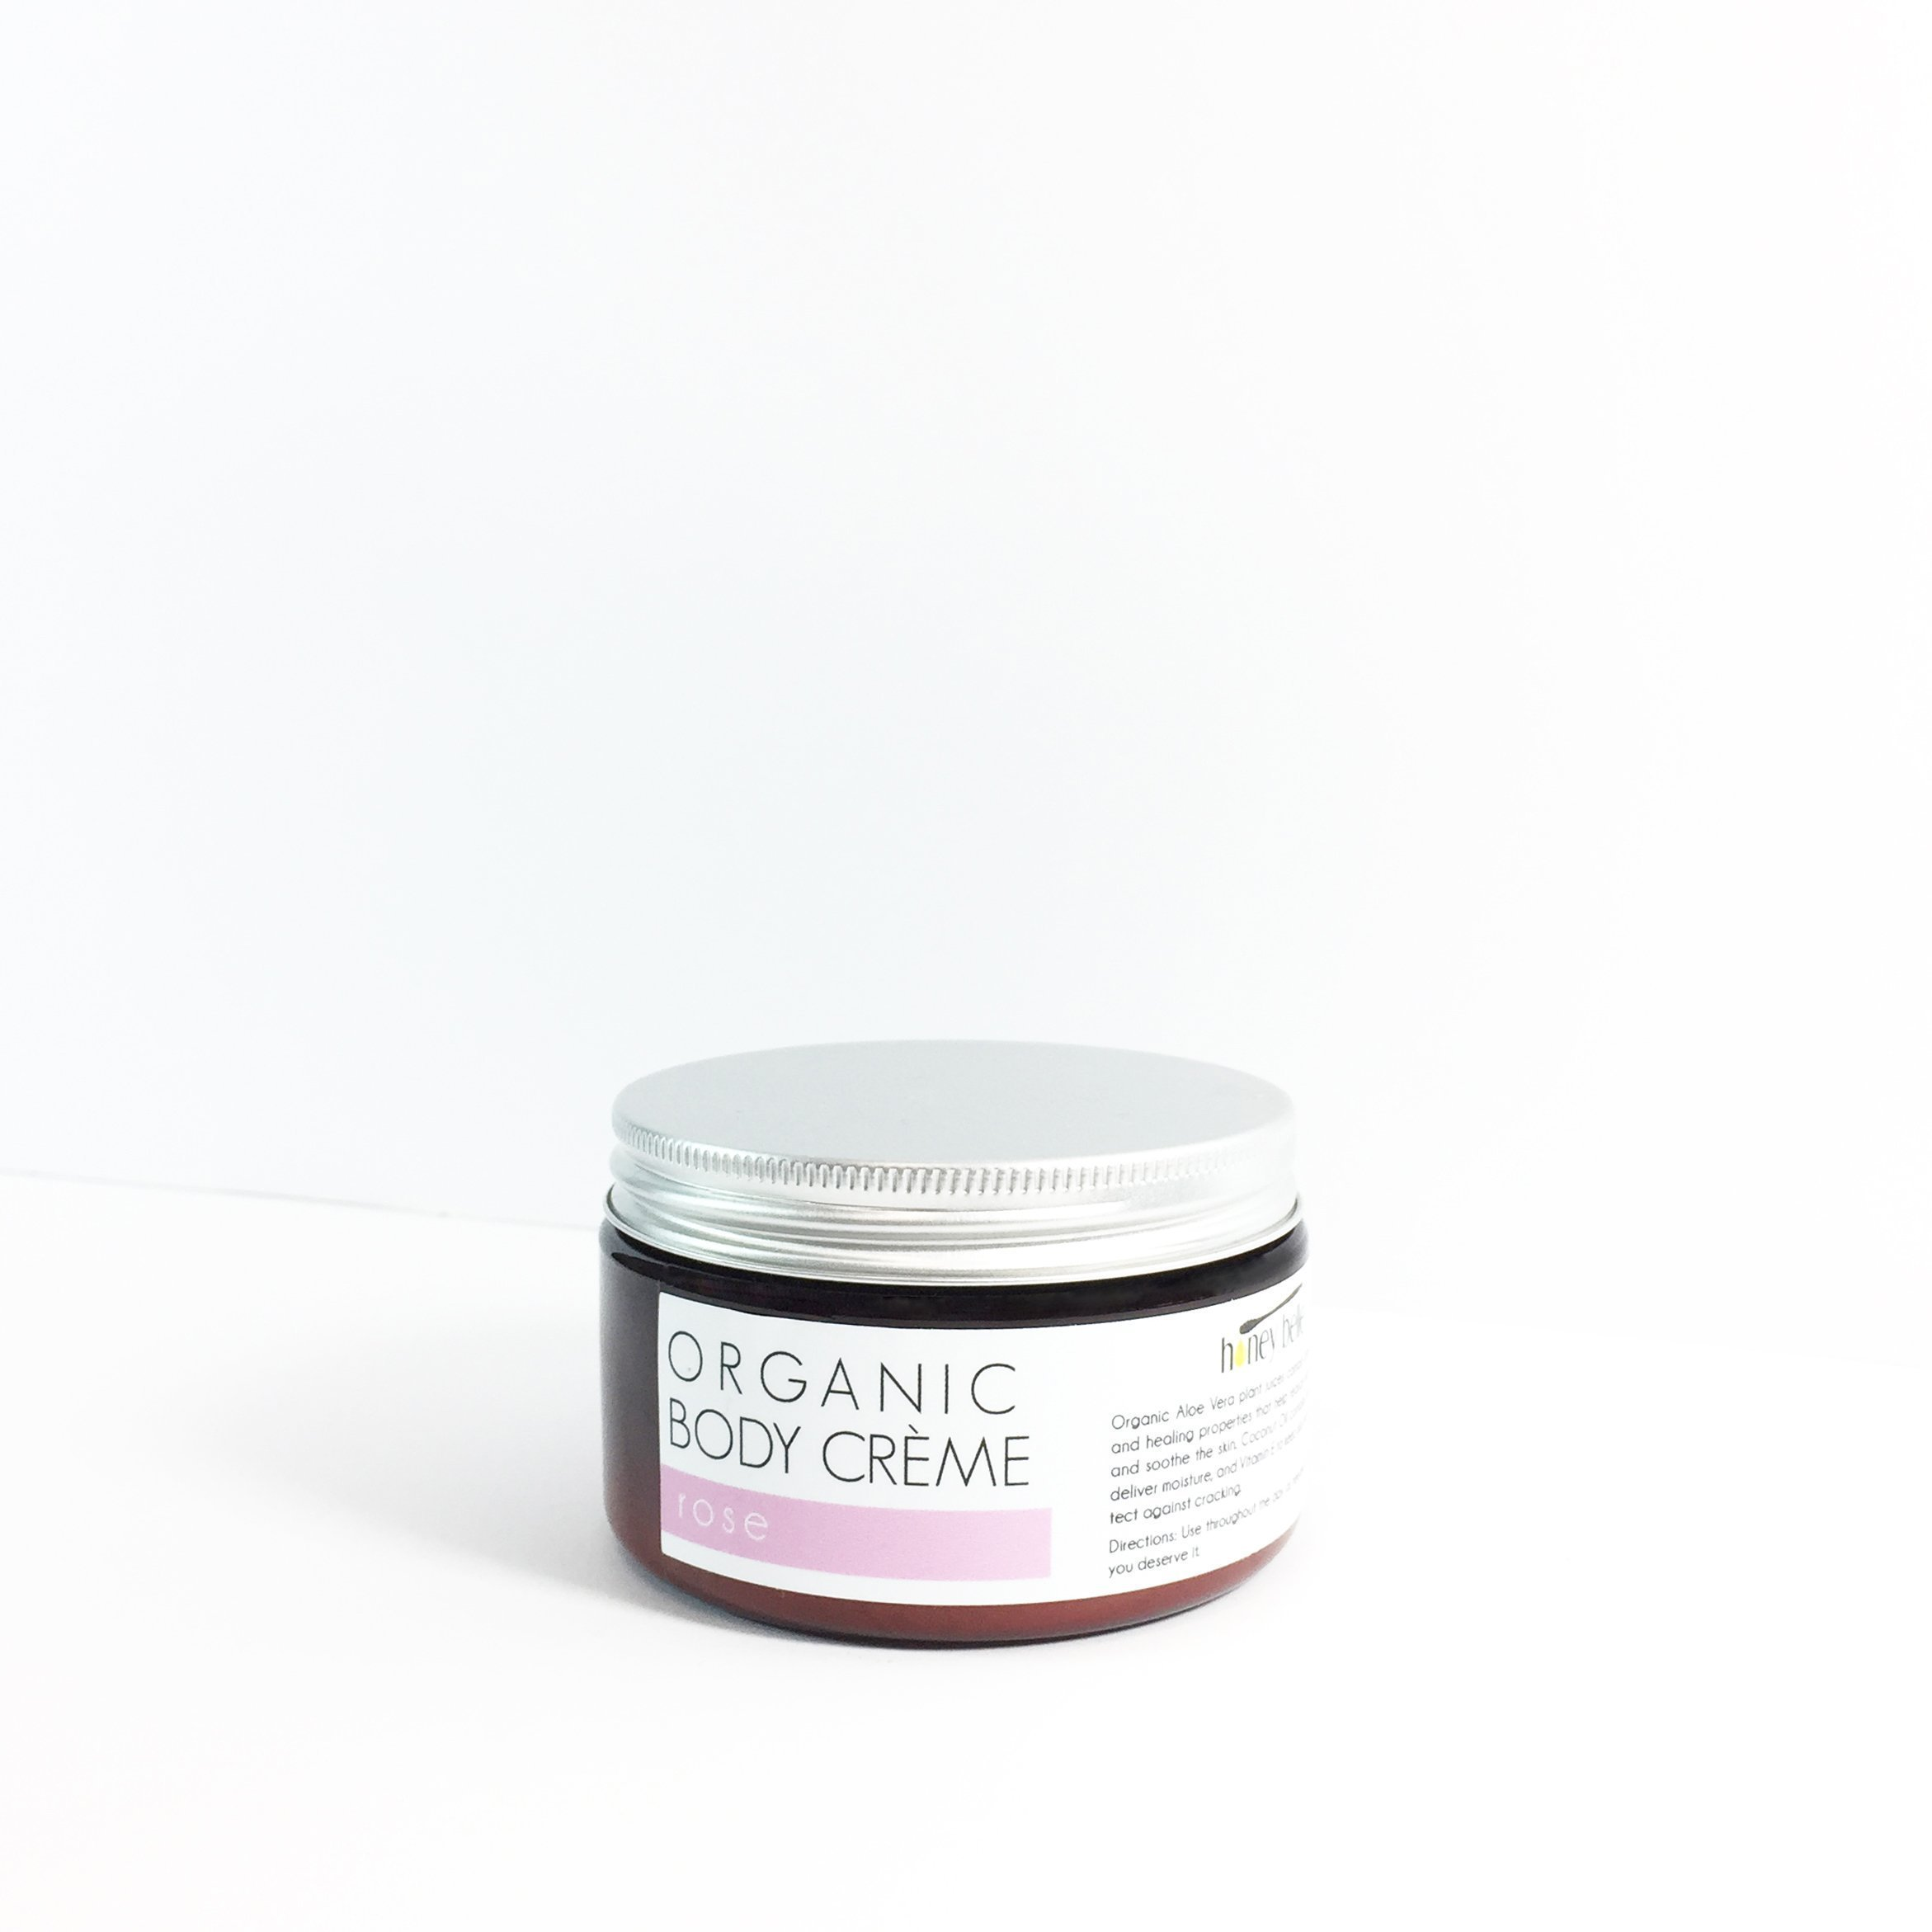 All Natural Rose Body Creme 4 oz - Luxurious and Moisturizing Body Creme Loaded With Skin-Softening Nutrients - For All Skin, Sensitive Treatment - By Honey Belle